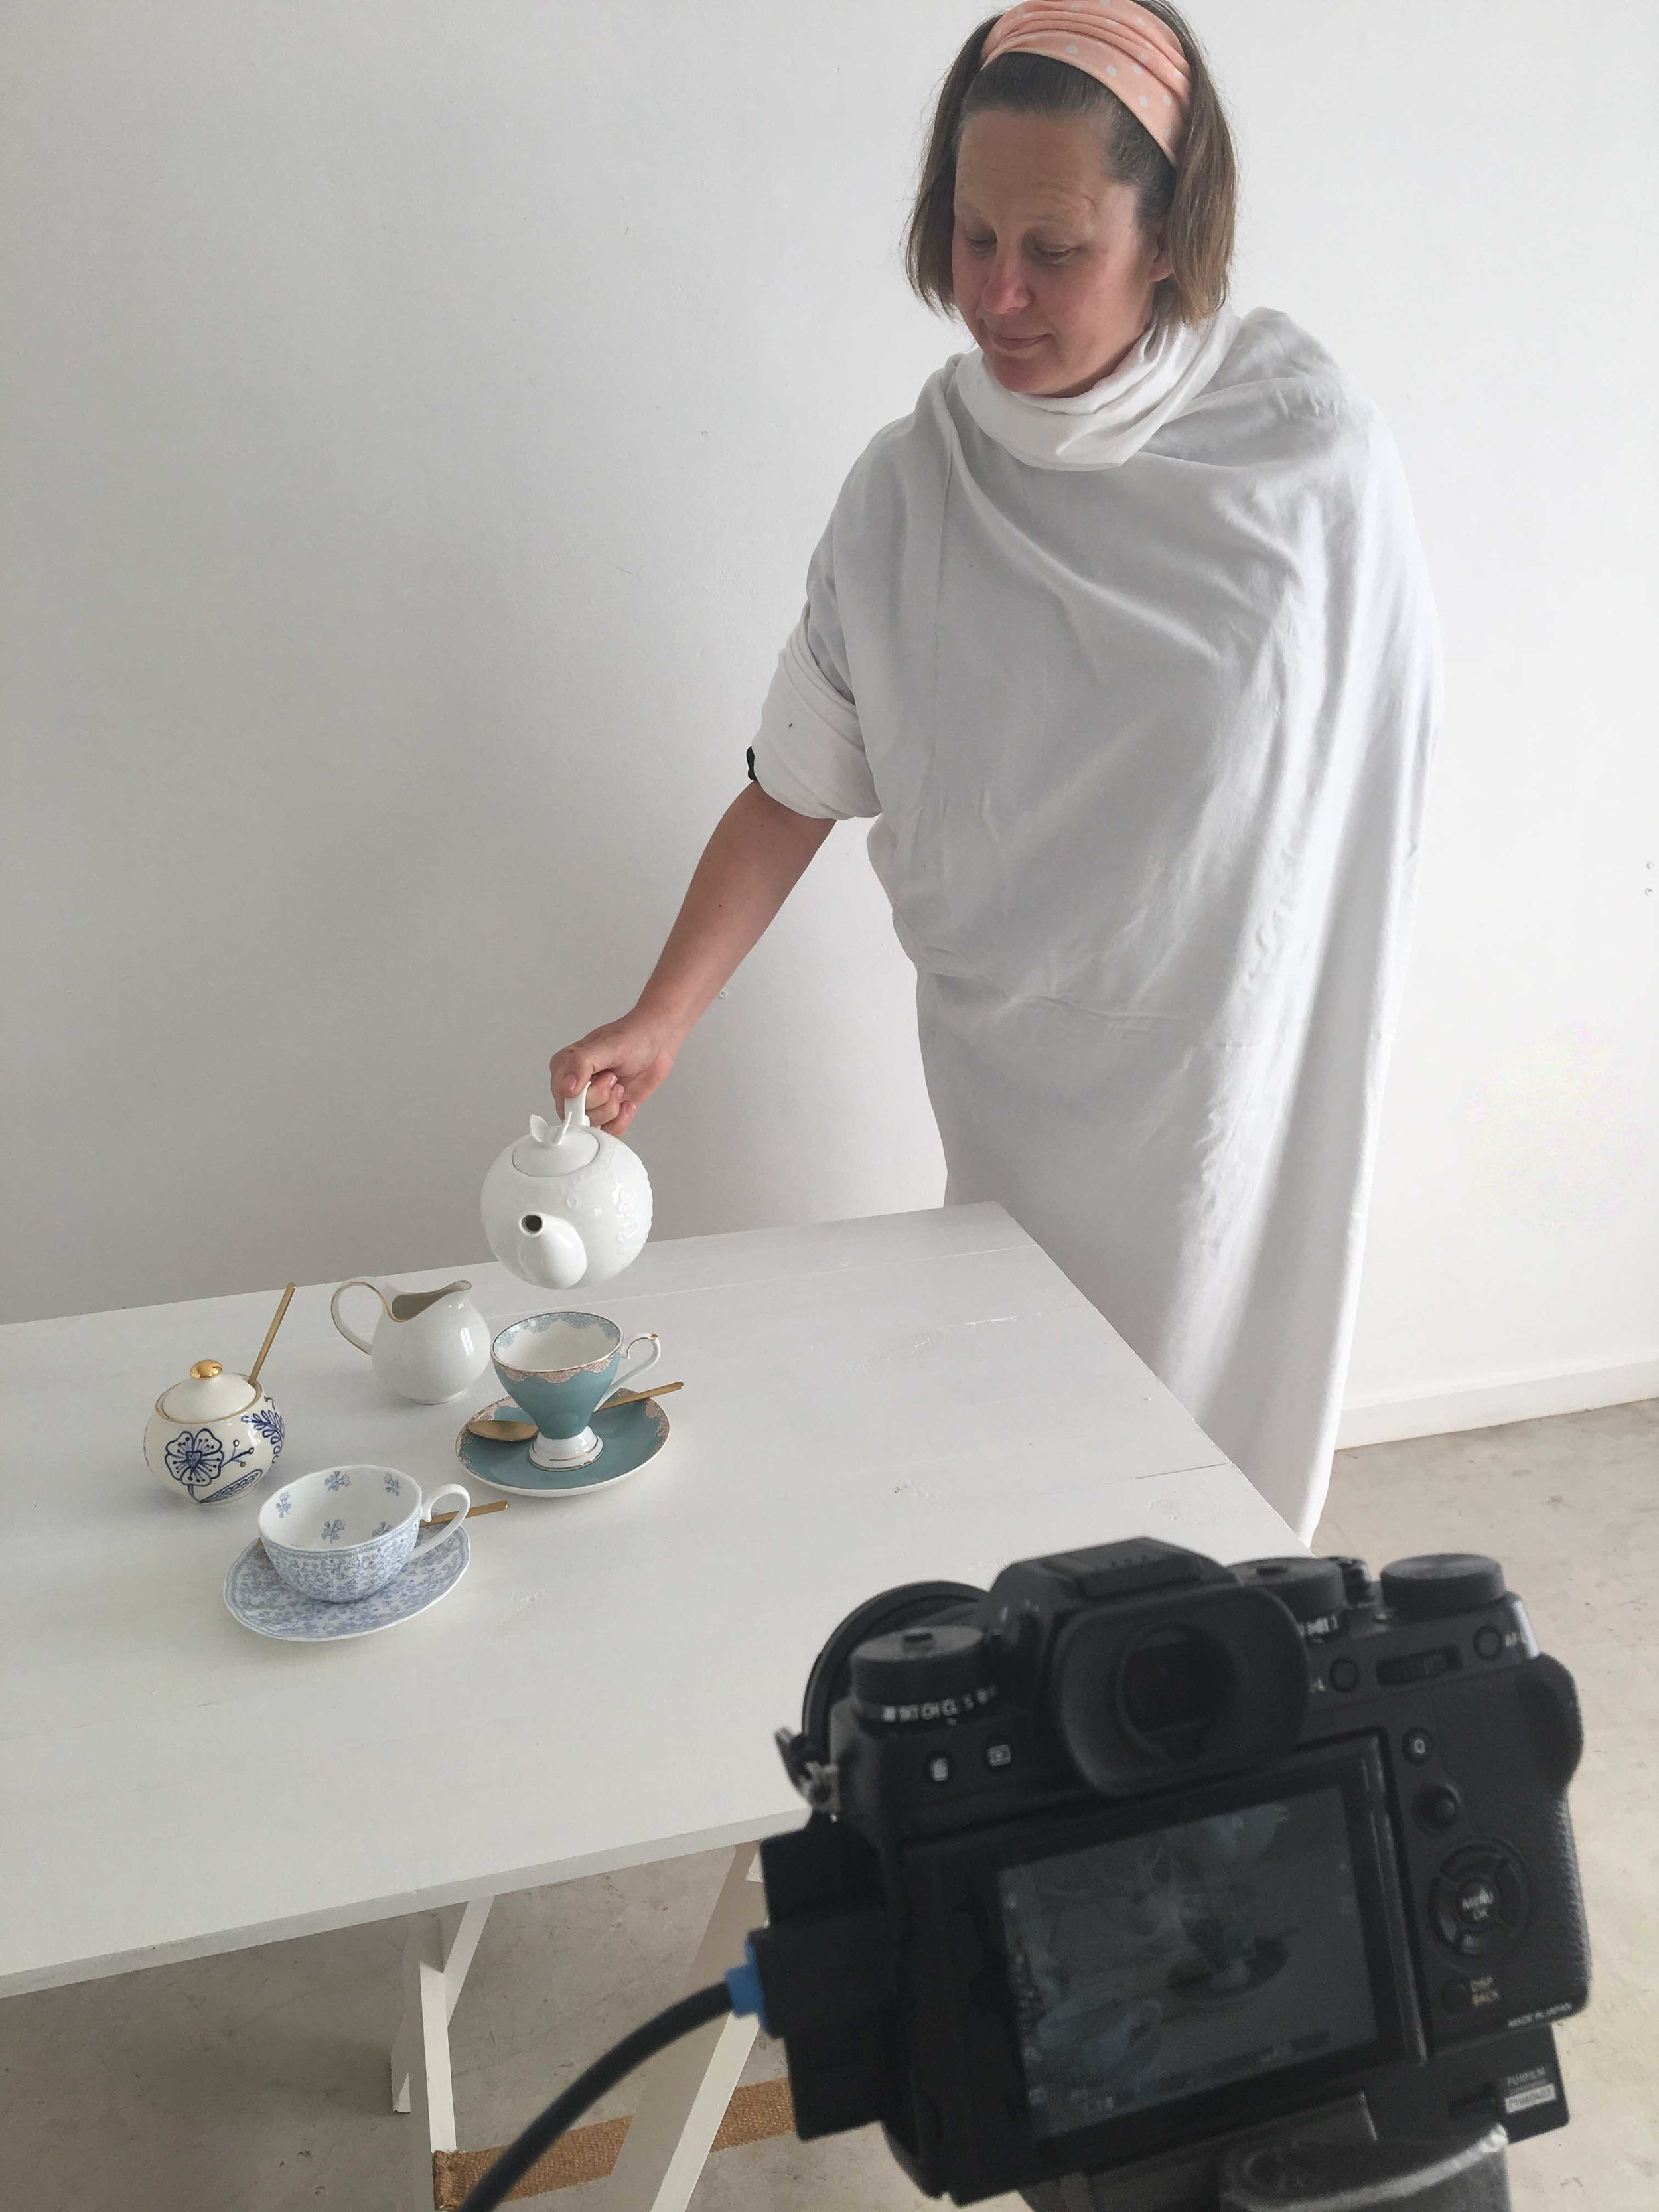 Shelly models the Toga — essential wear for stop motion photoshoots.